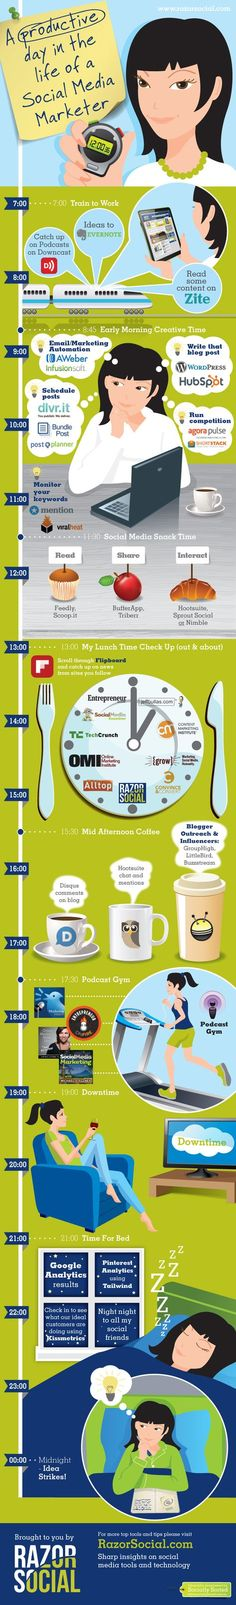 Infographic: A Productive Day in the Life of a Social Media Marketer by /razorsocial/